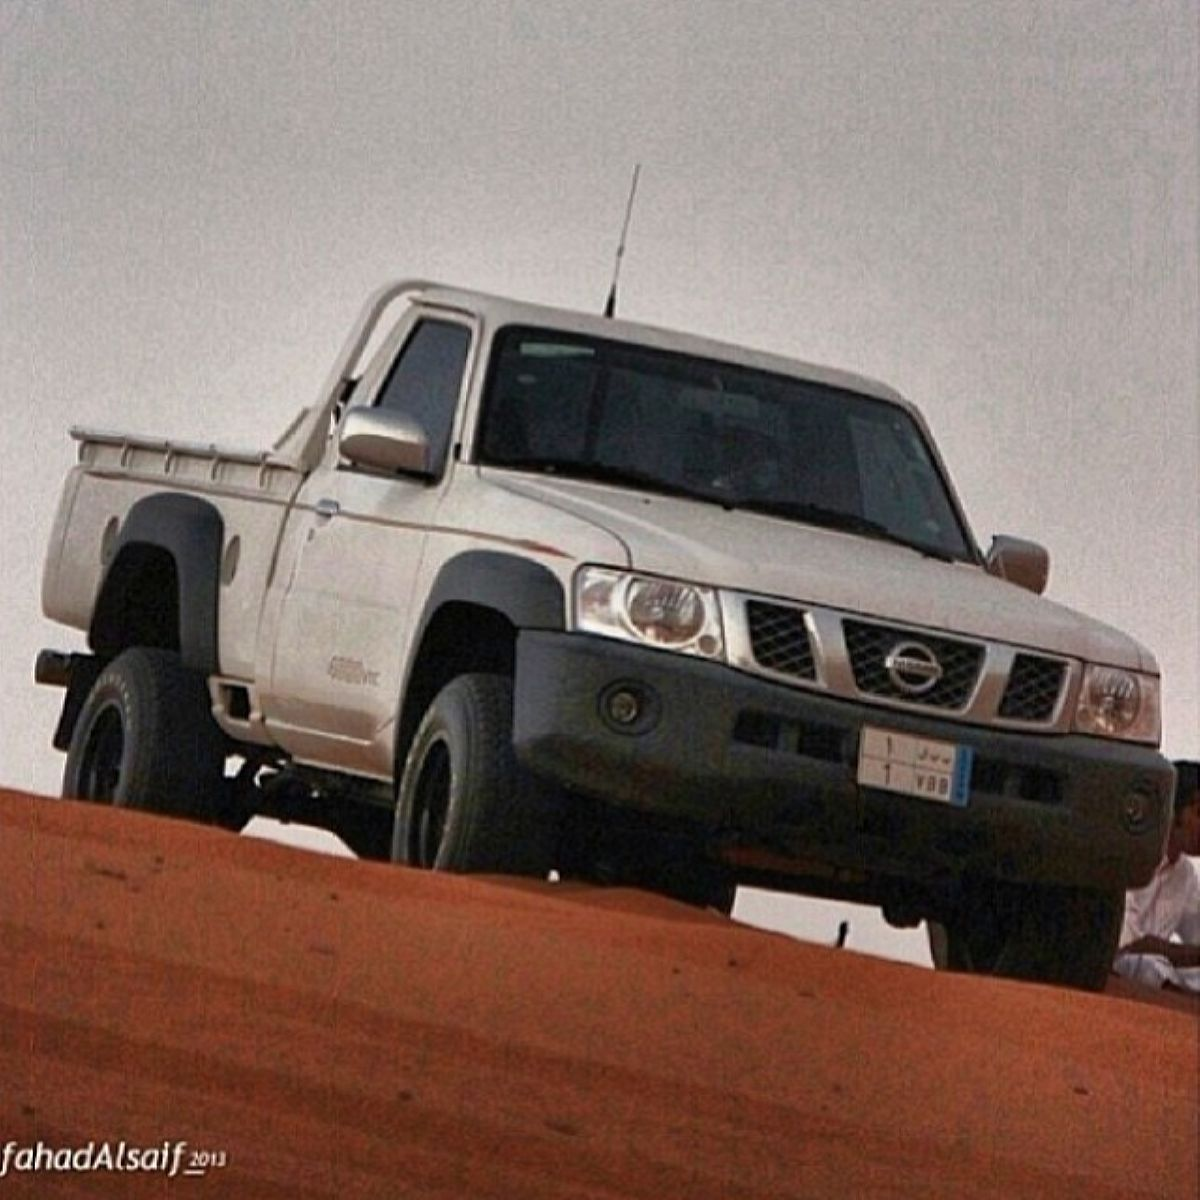 نيسان حوض - أعلى Vtc نيسان Patrol شاص On Instagram أفكار